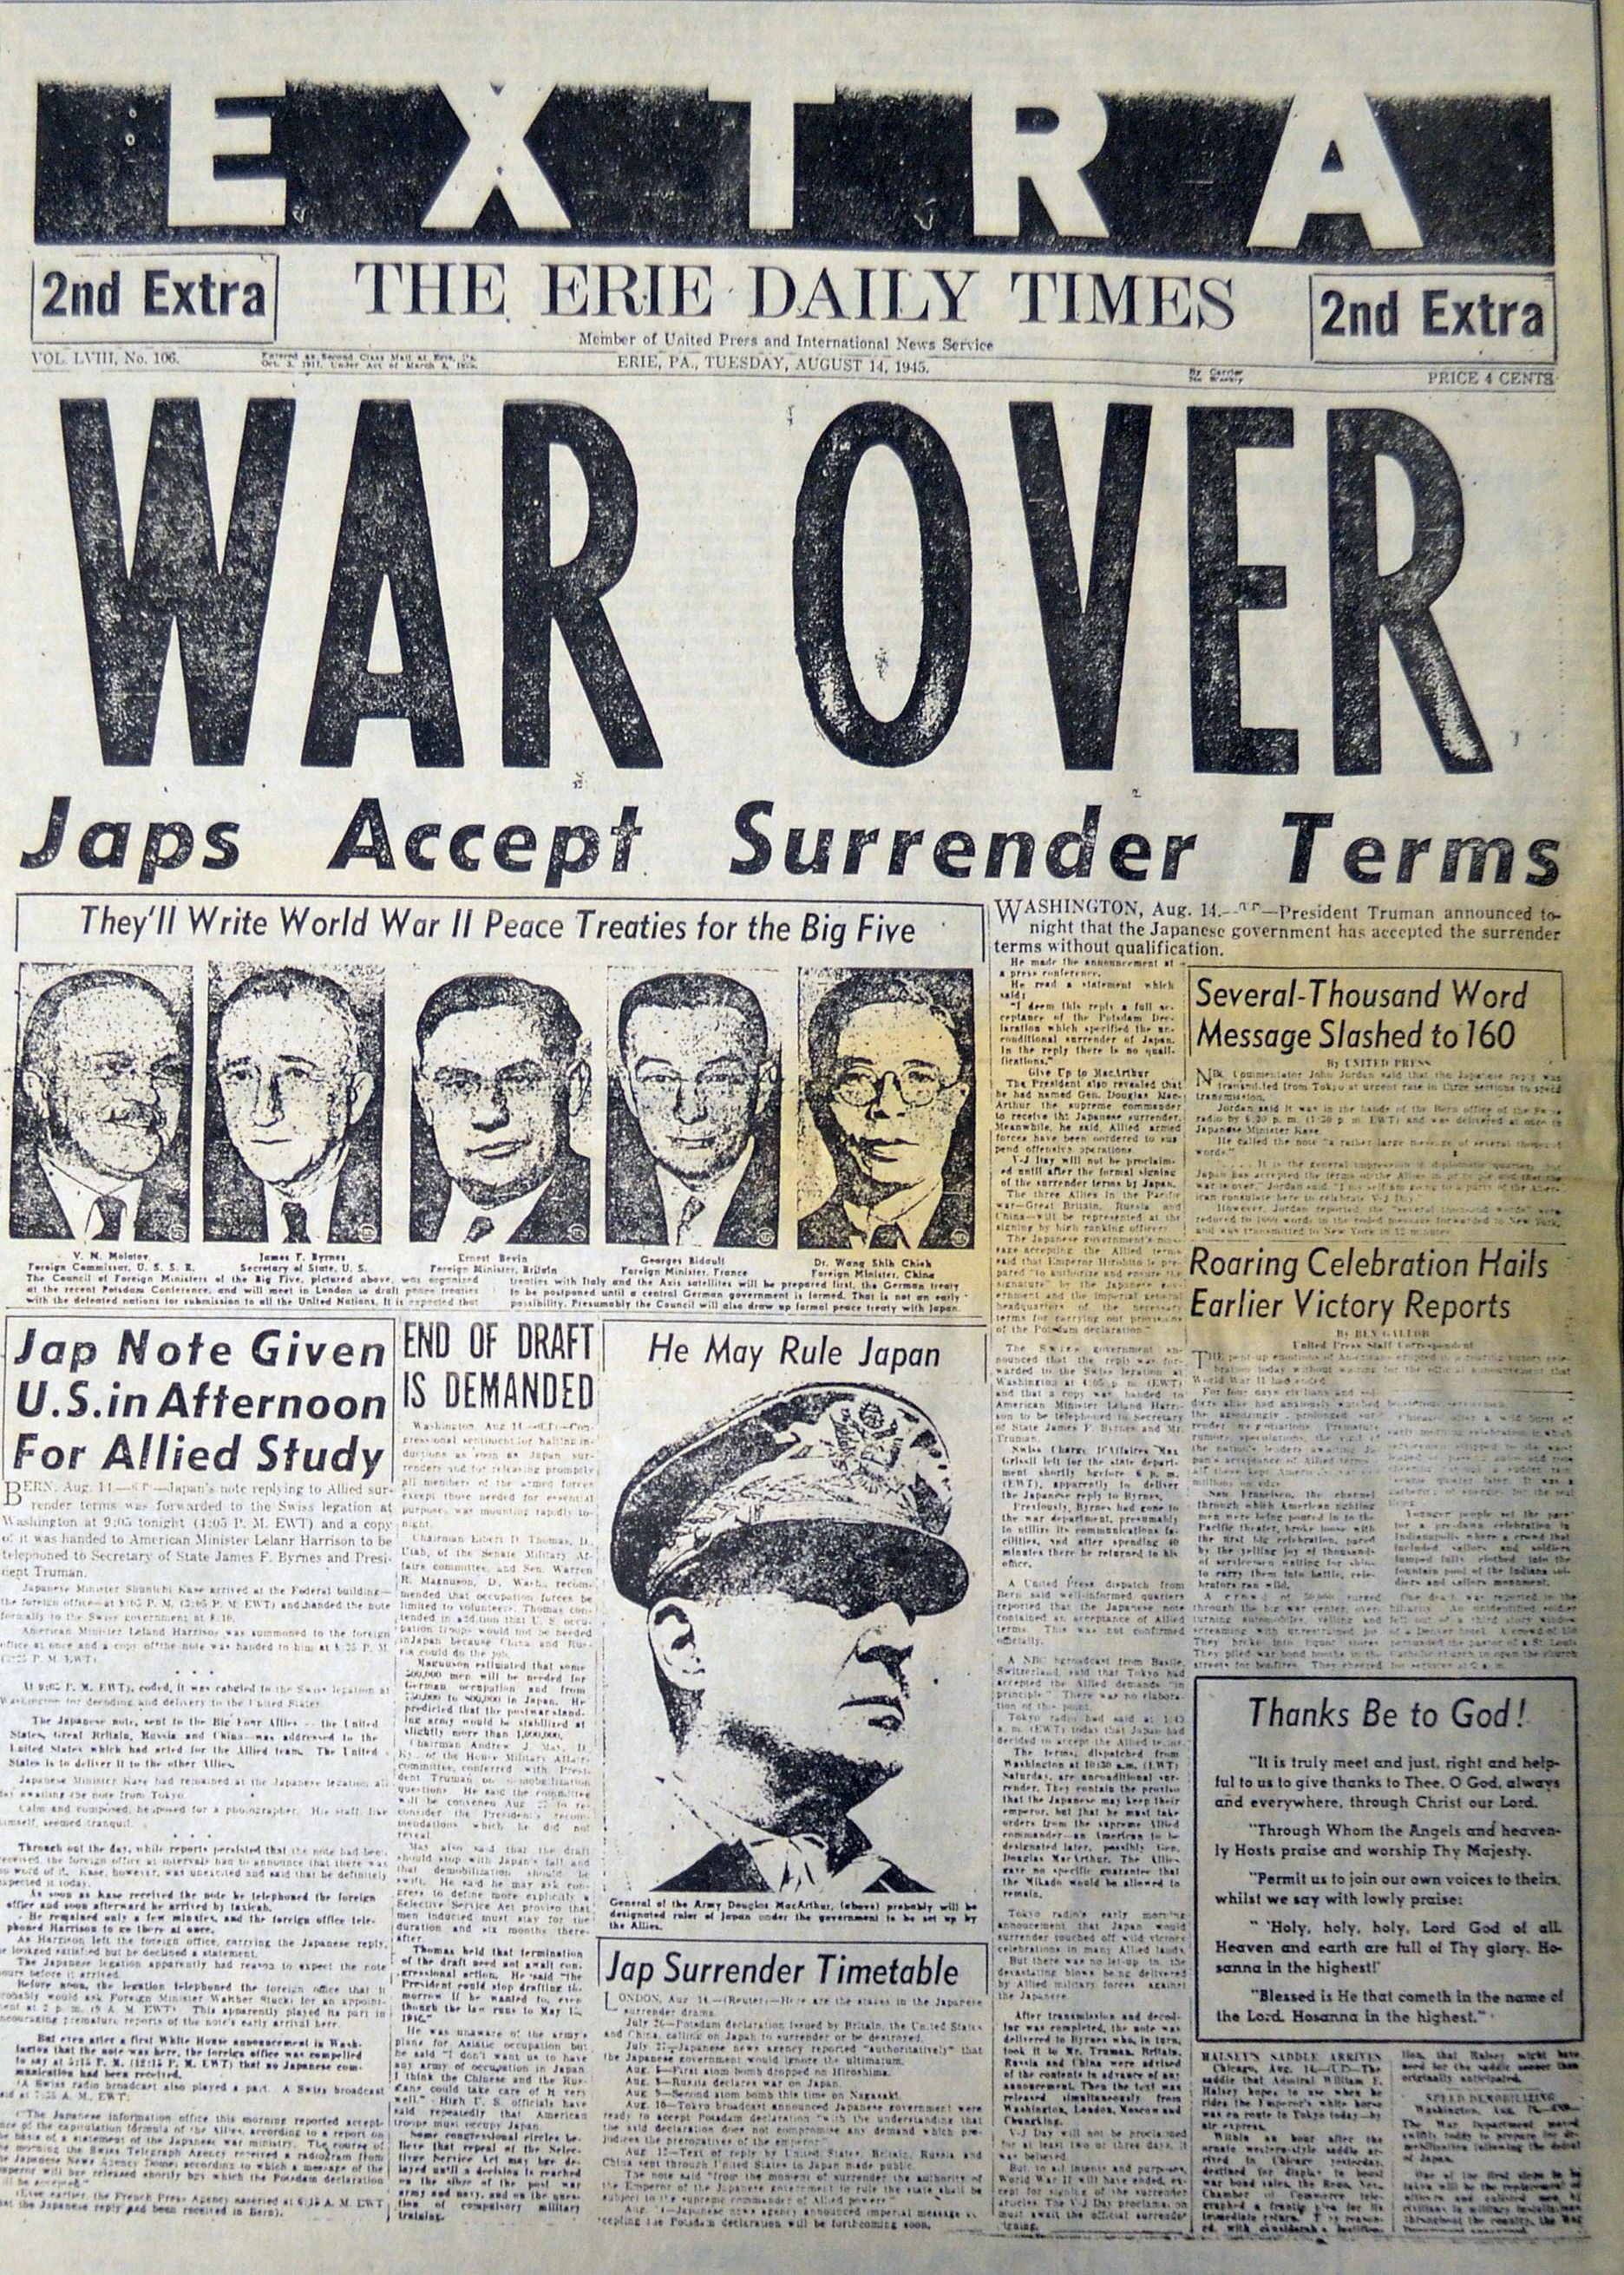 This Headline Speaks For Itself Dated August 14 1945 The Erie Daily Times Celebrates The End Of World War Ii With The Rest Of The World